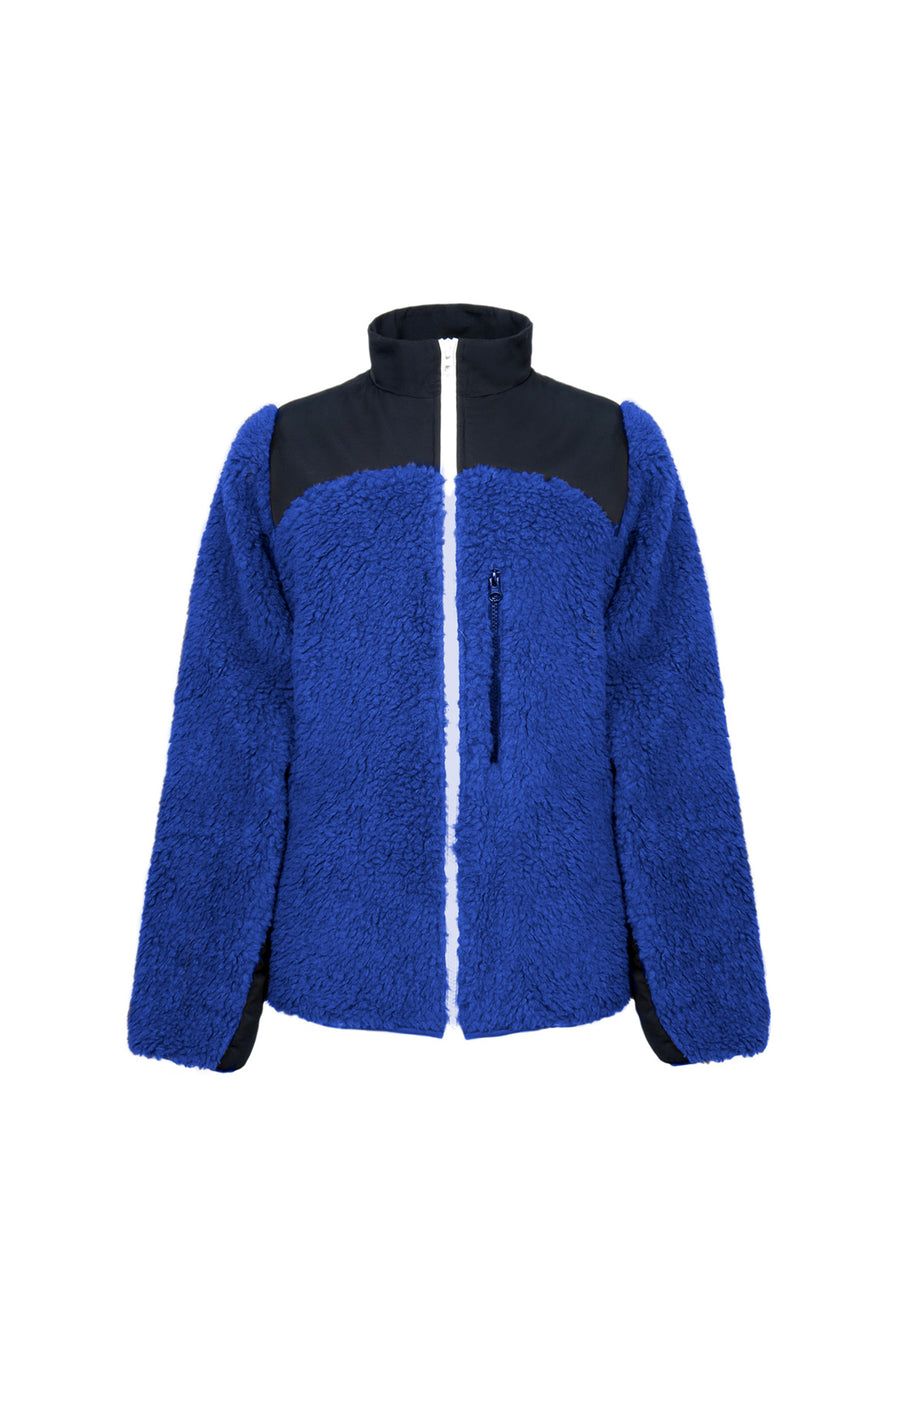 Rushi Fleece in Cobalt